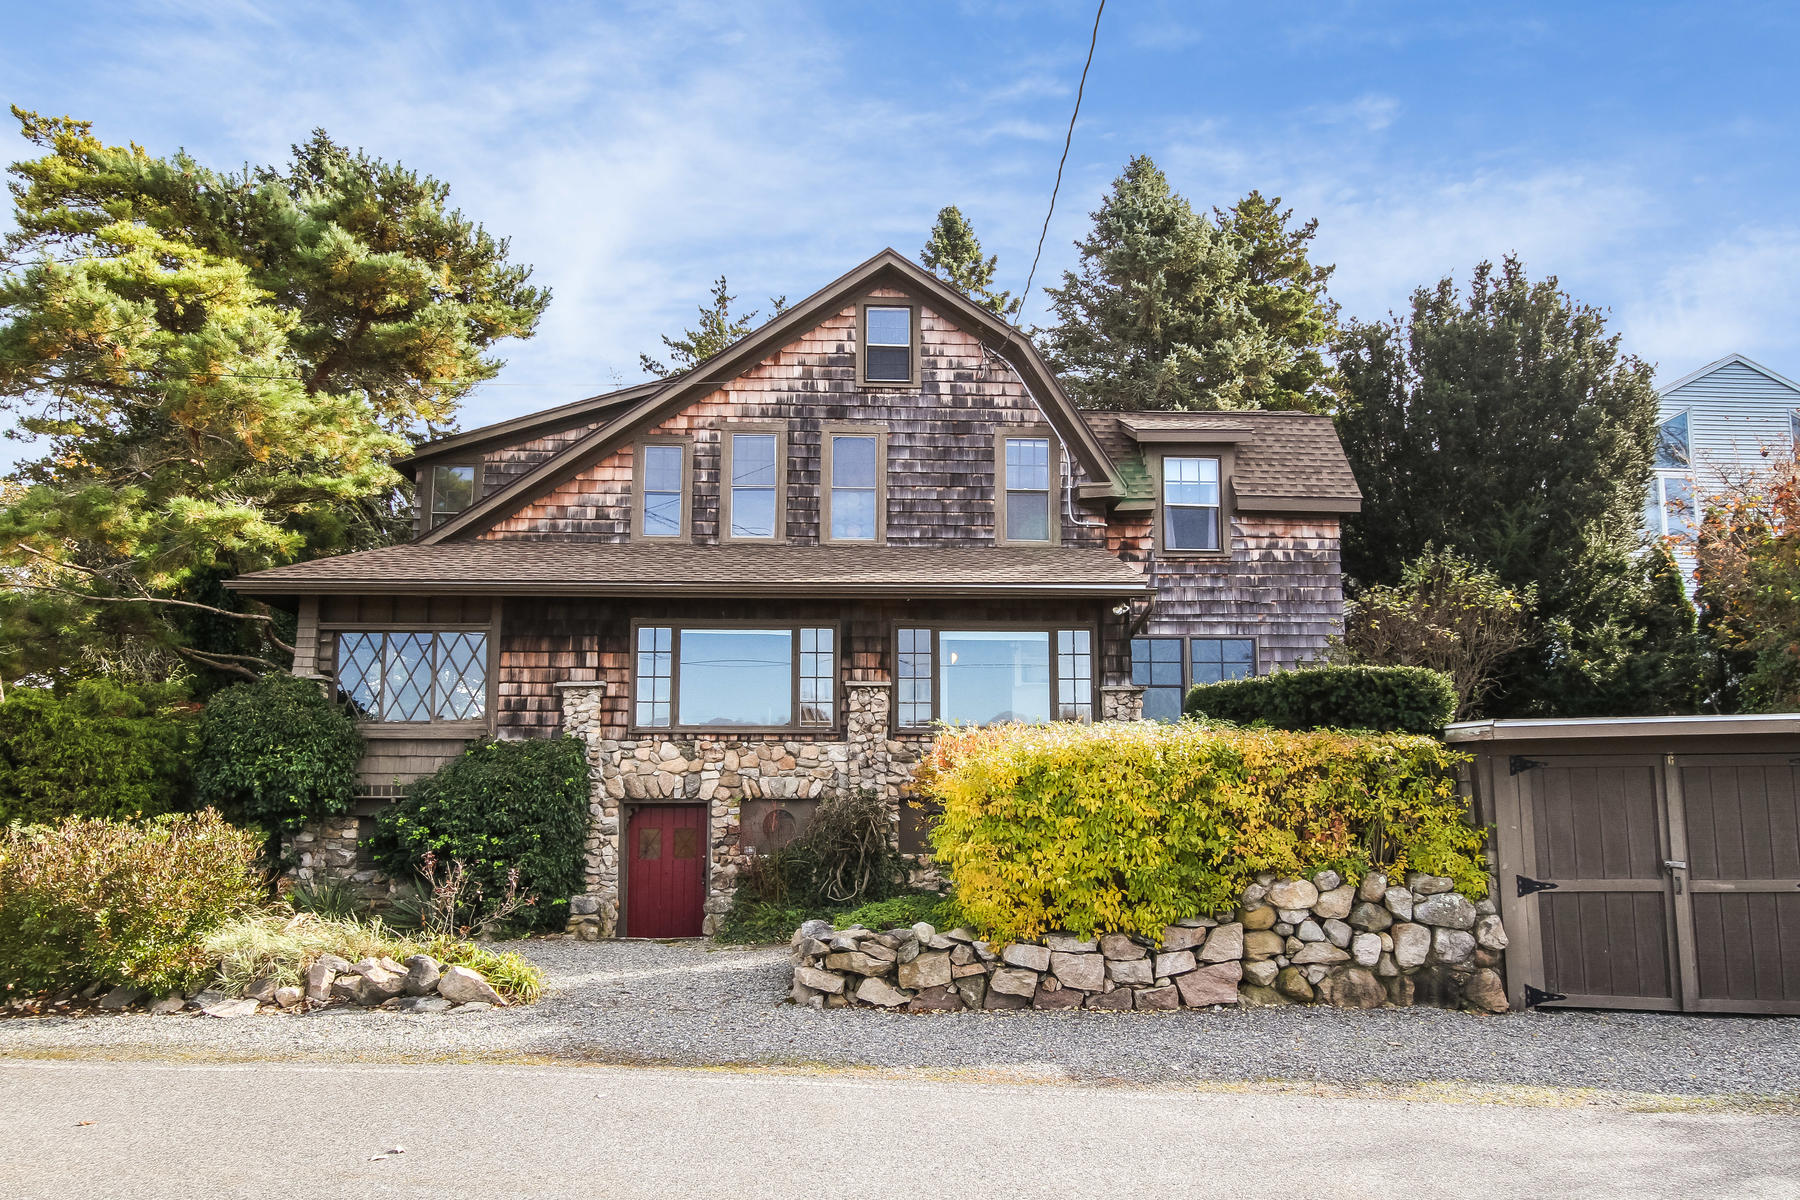 Single Family Homes for Sale at Classic Shingle Stone Craftsman 7 & 9 Cross Street Groton, Connecticut 06340 United States